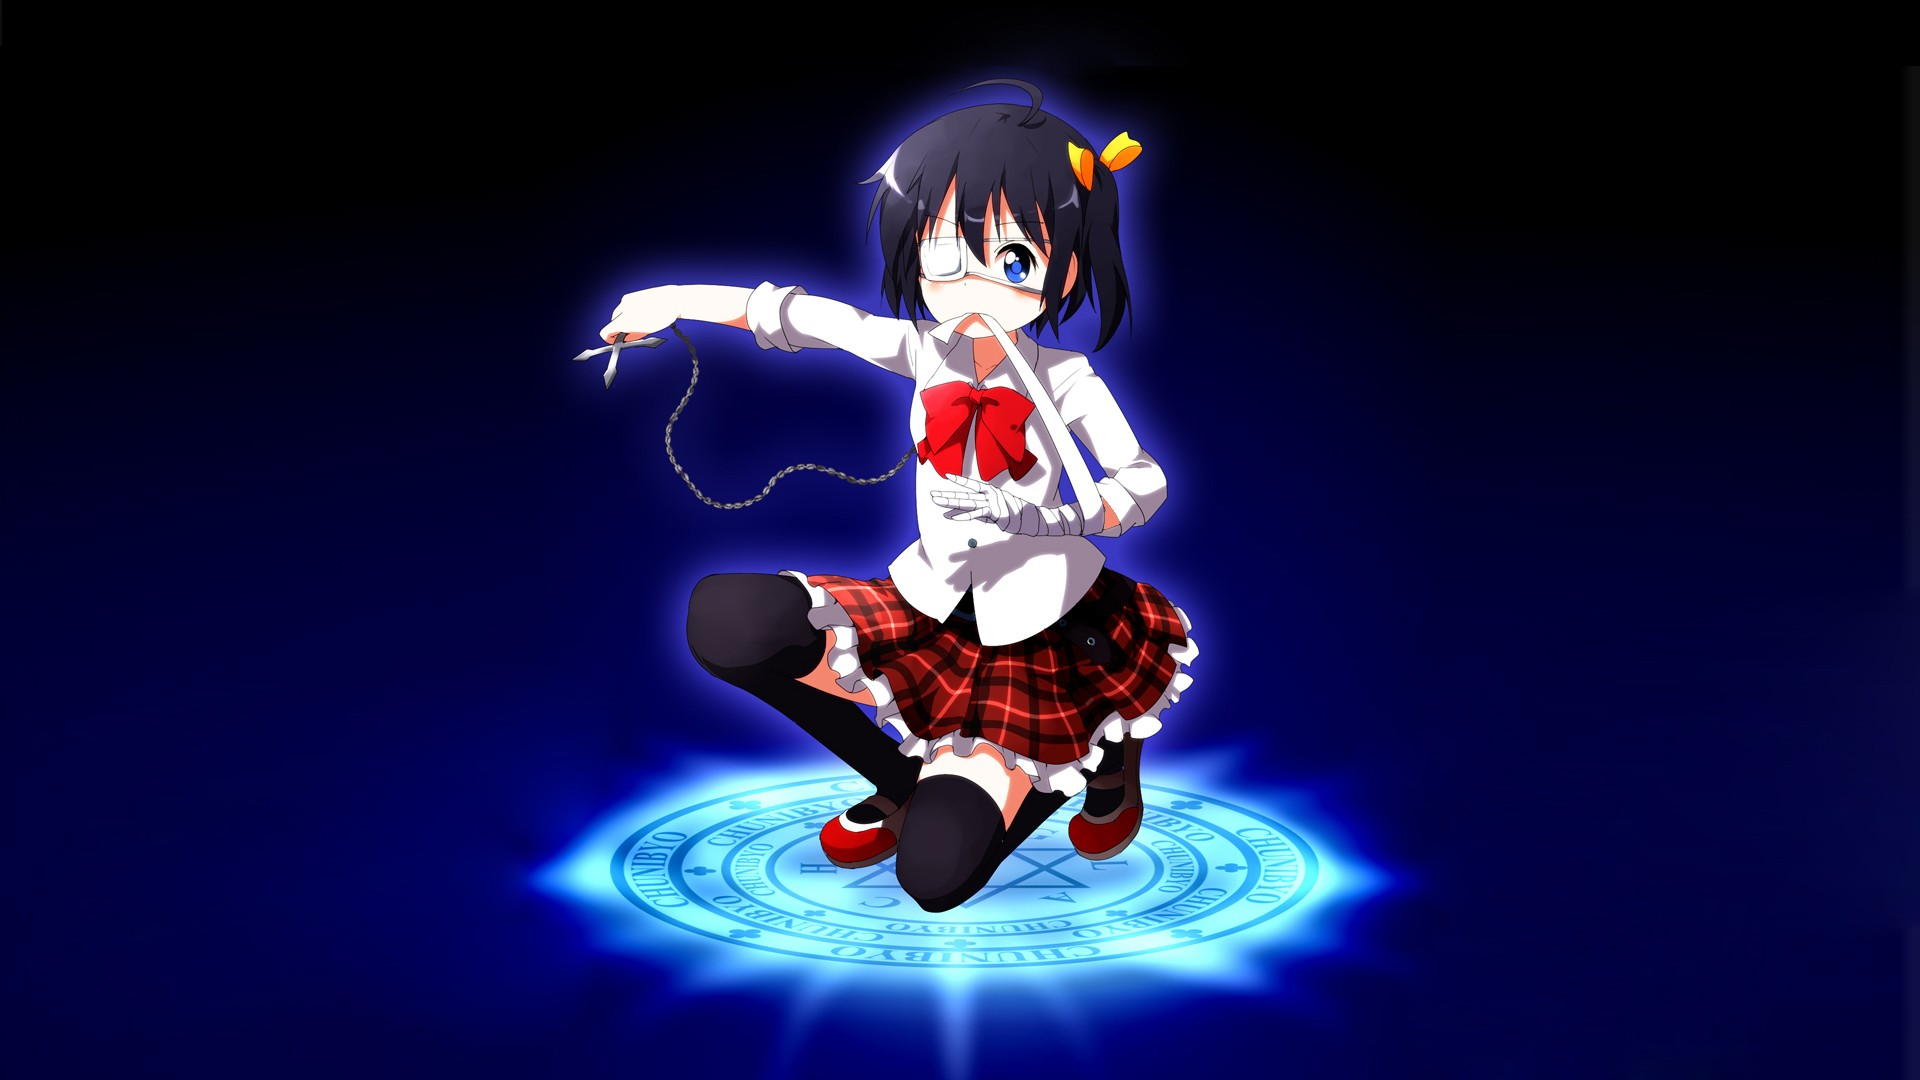 Love chunibyo other delusions full hd wallpaper and - Love f wallpaper hd download ...